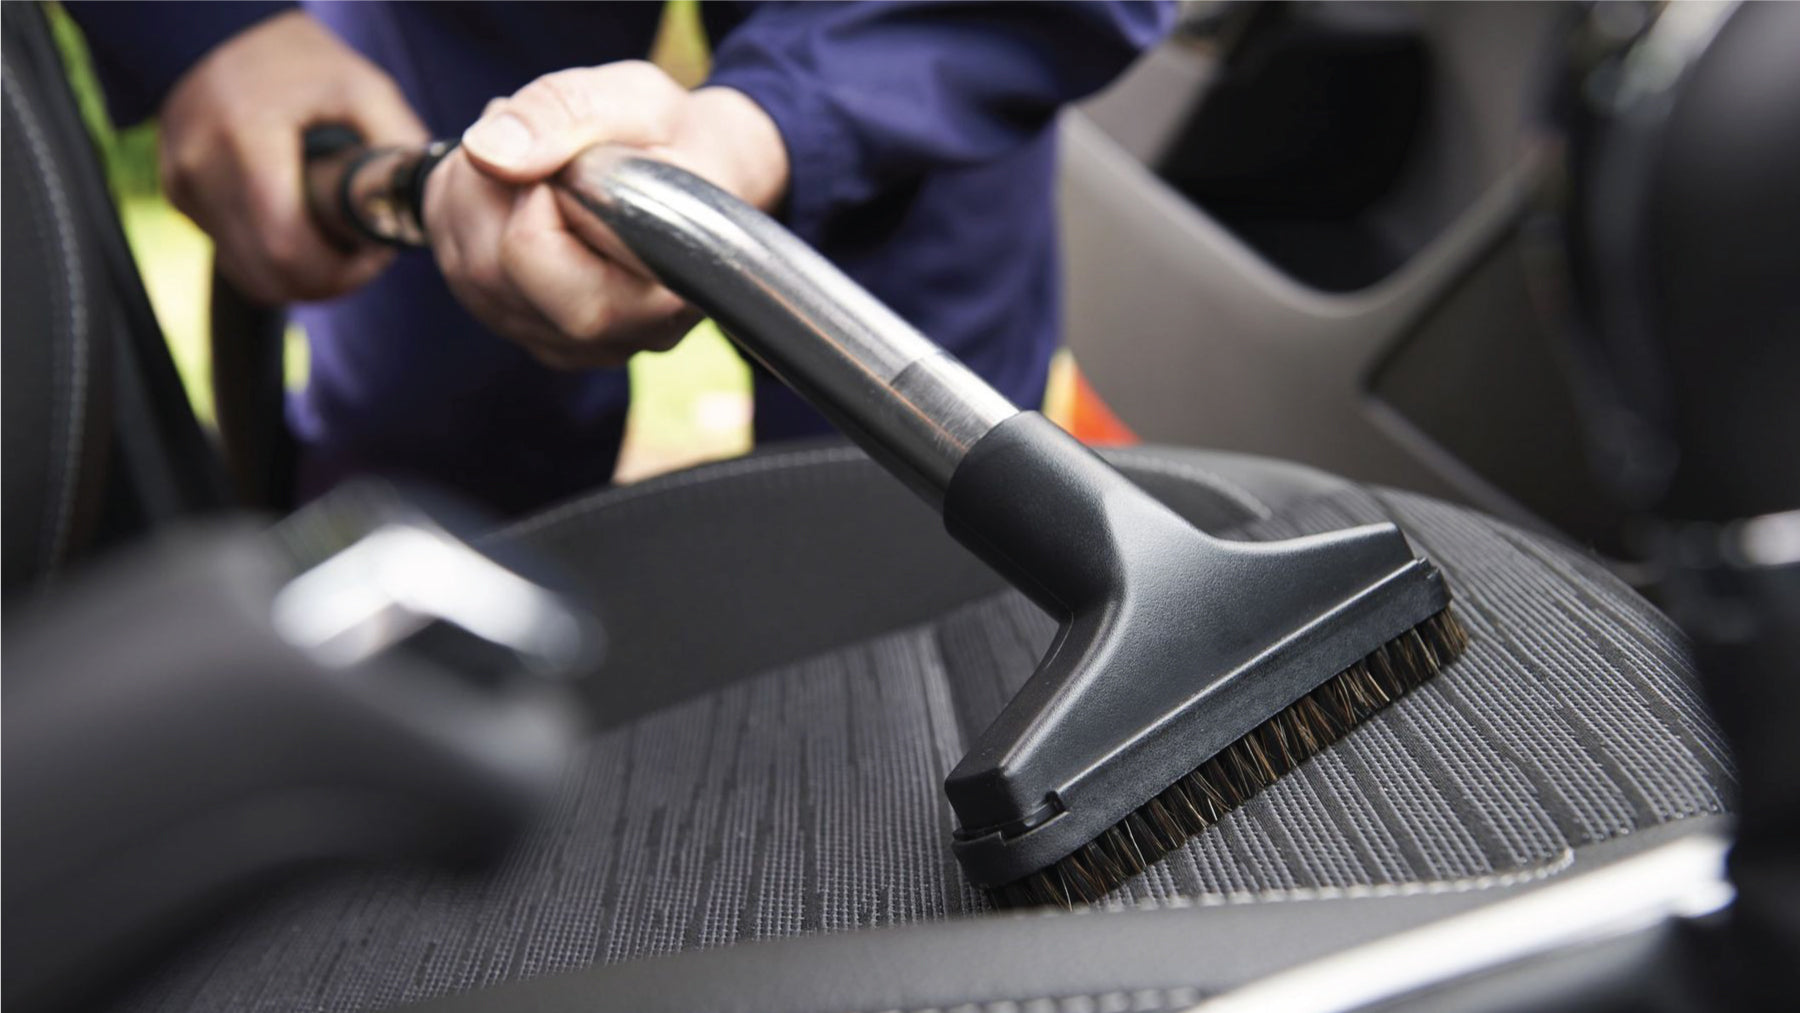 Tips for Cleaning & Disinfecting your Home / Car